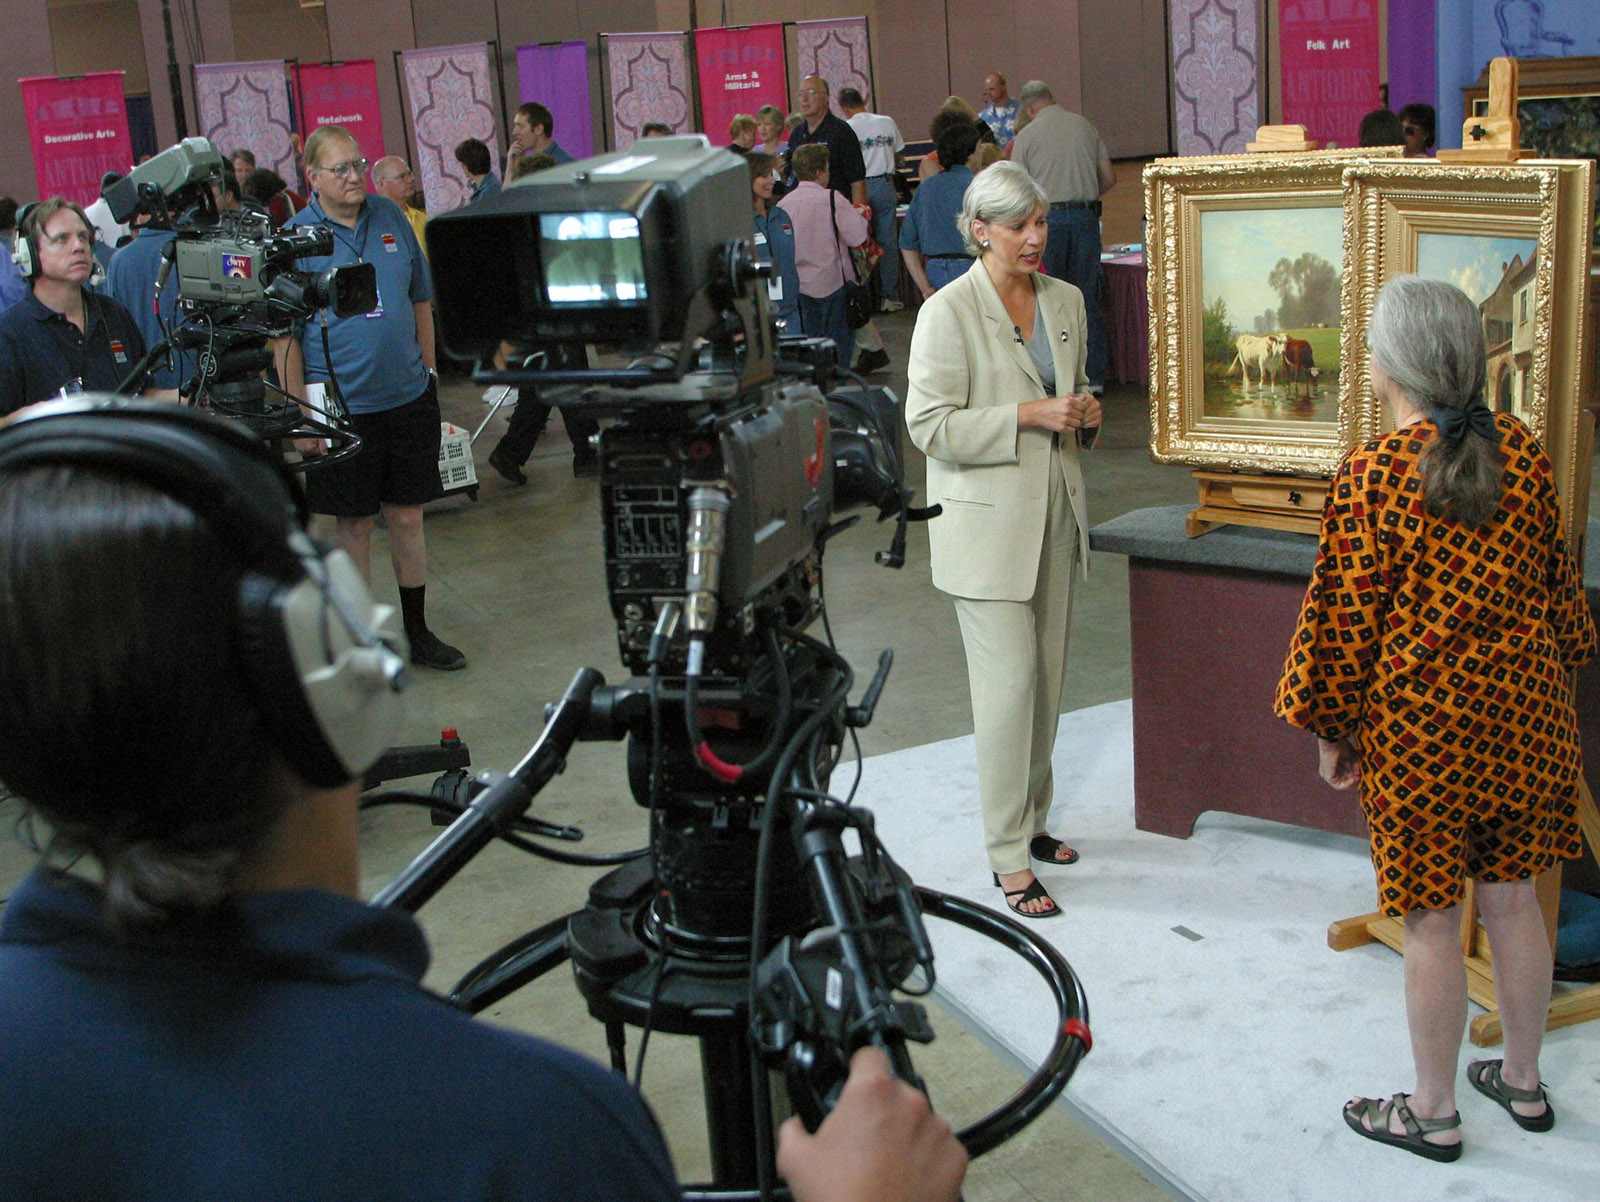 'Amazing' Sculpture on 'Antiques Roadshow' Found to Be High School Art Project